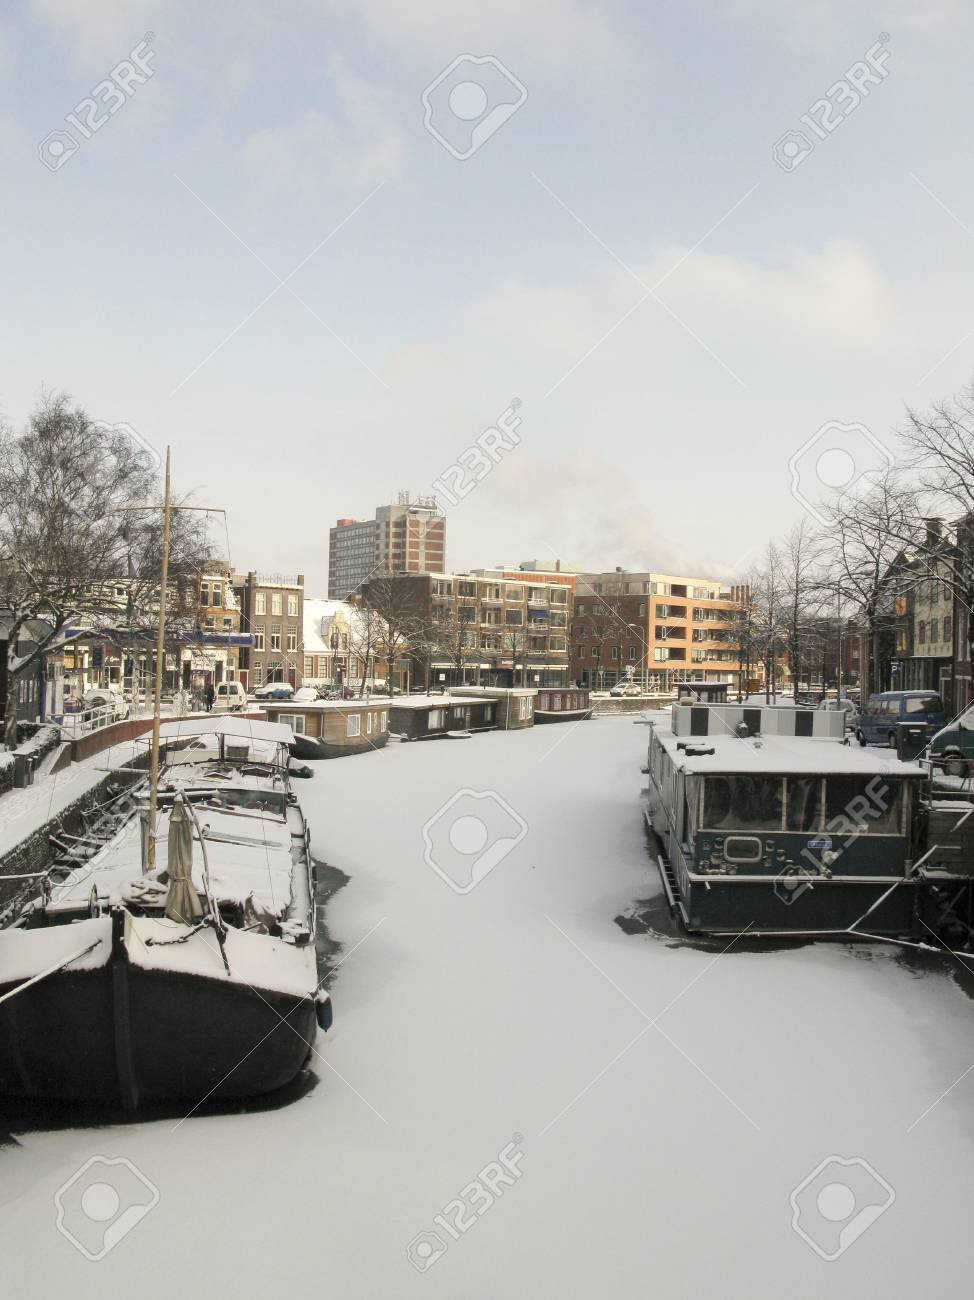 Frozen canal with houseboats in the Netherlands Stock Photo - 12754176